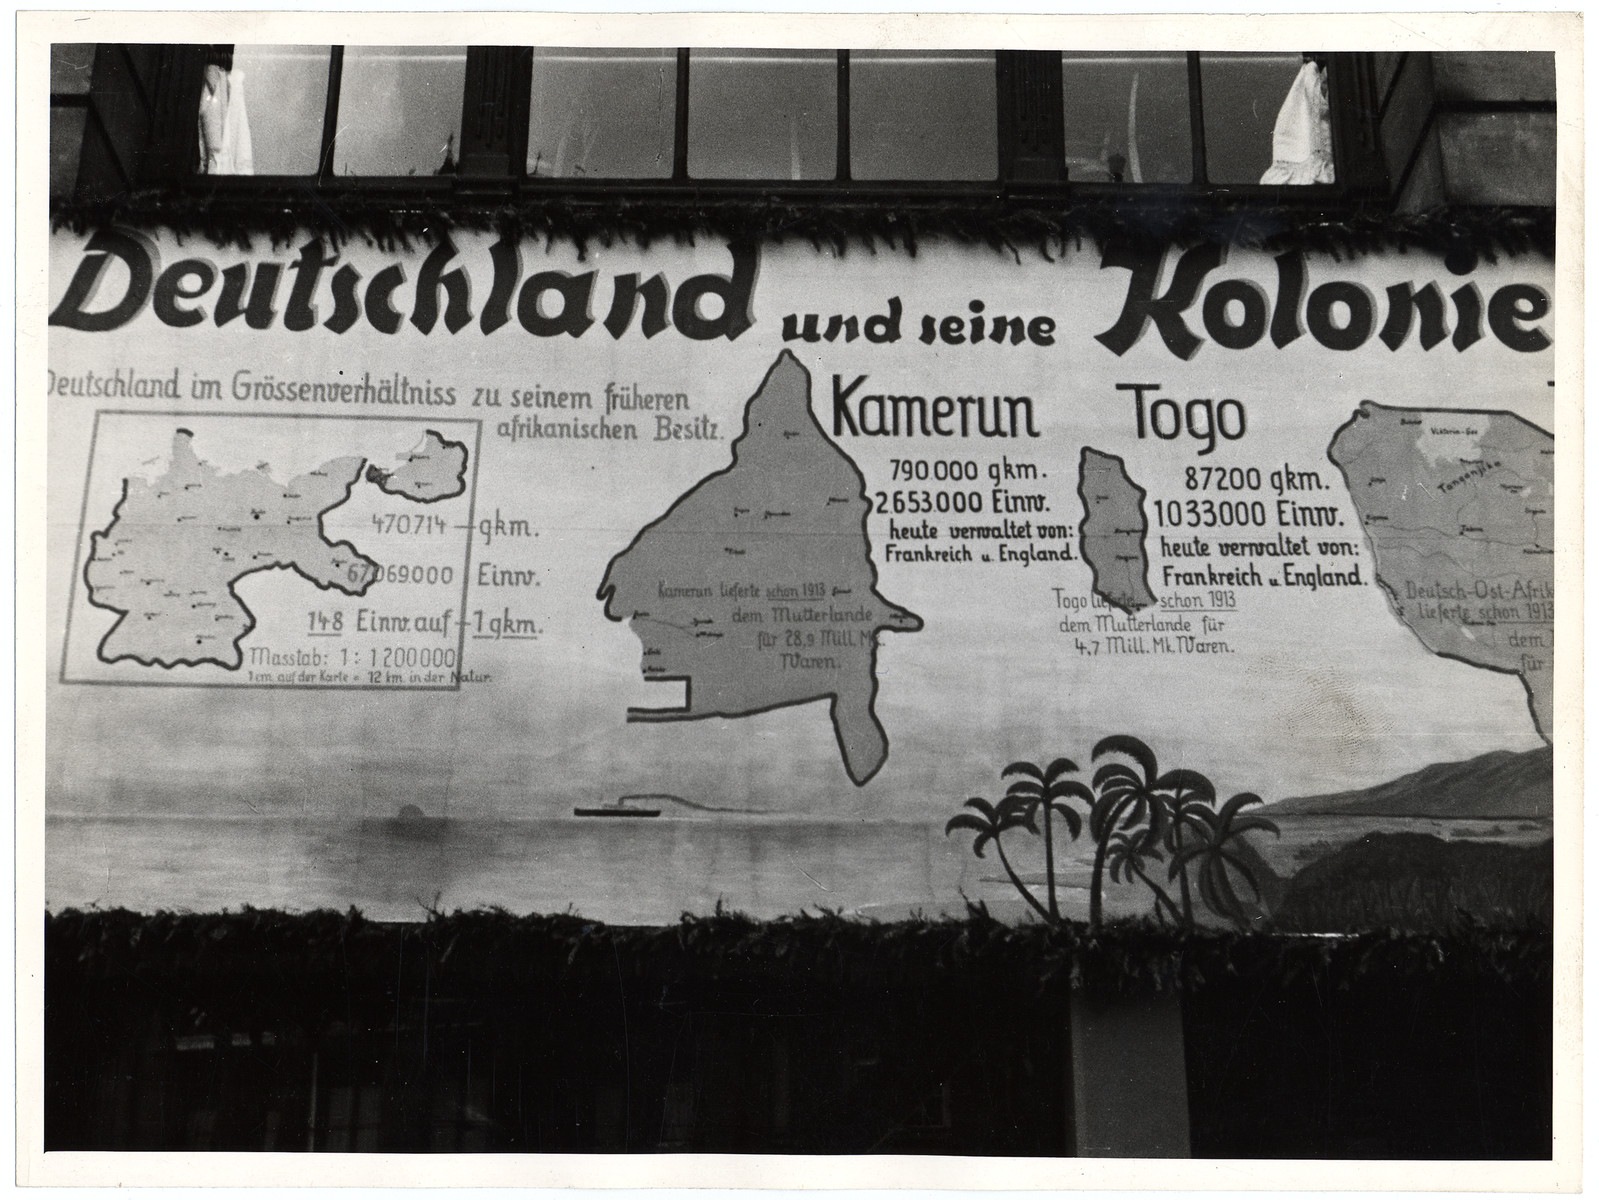 A Nazi propaganda poster boasts about German colonies in Africa, specifically Cameroon and Togo.